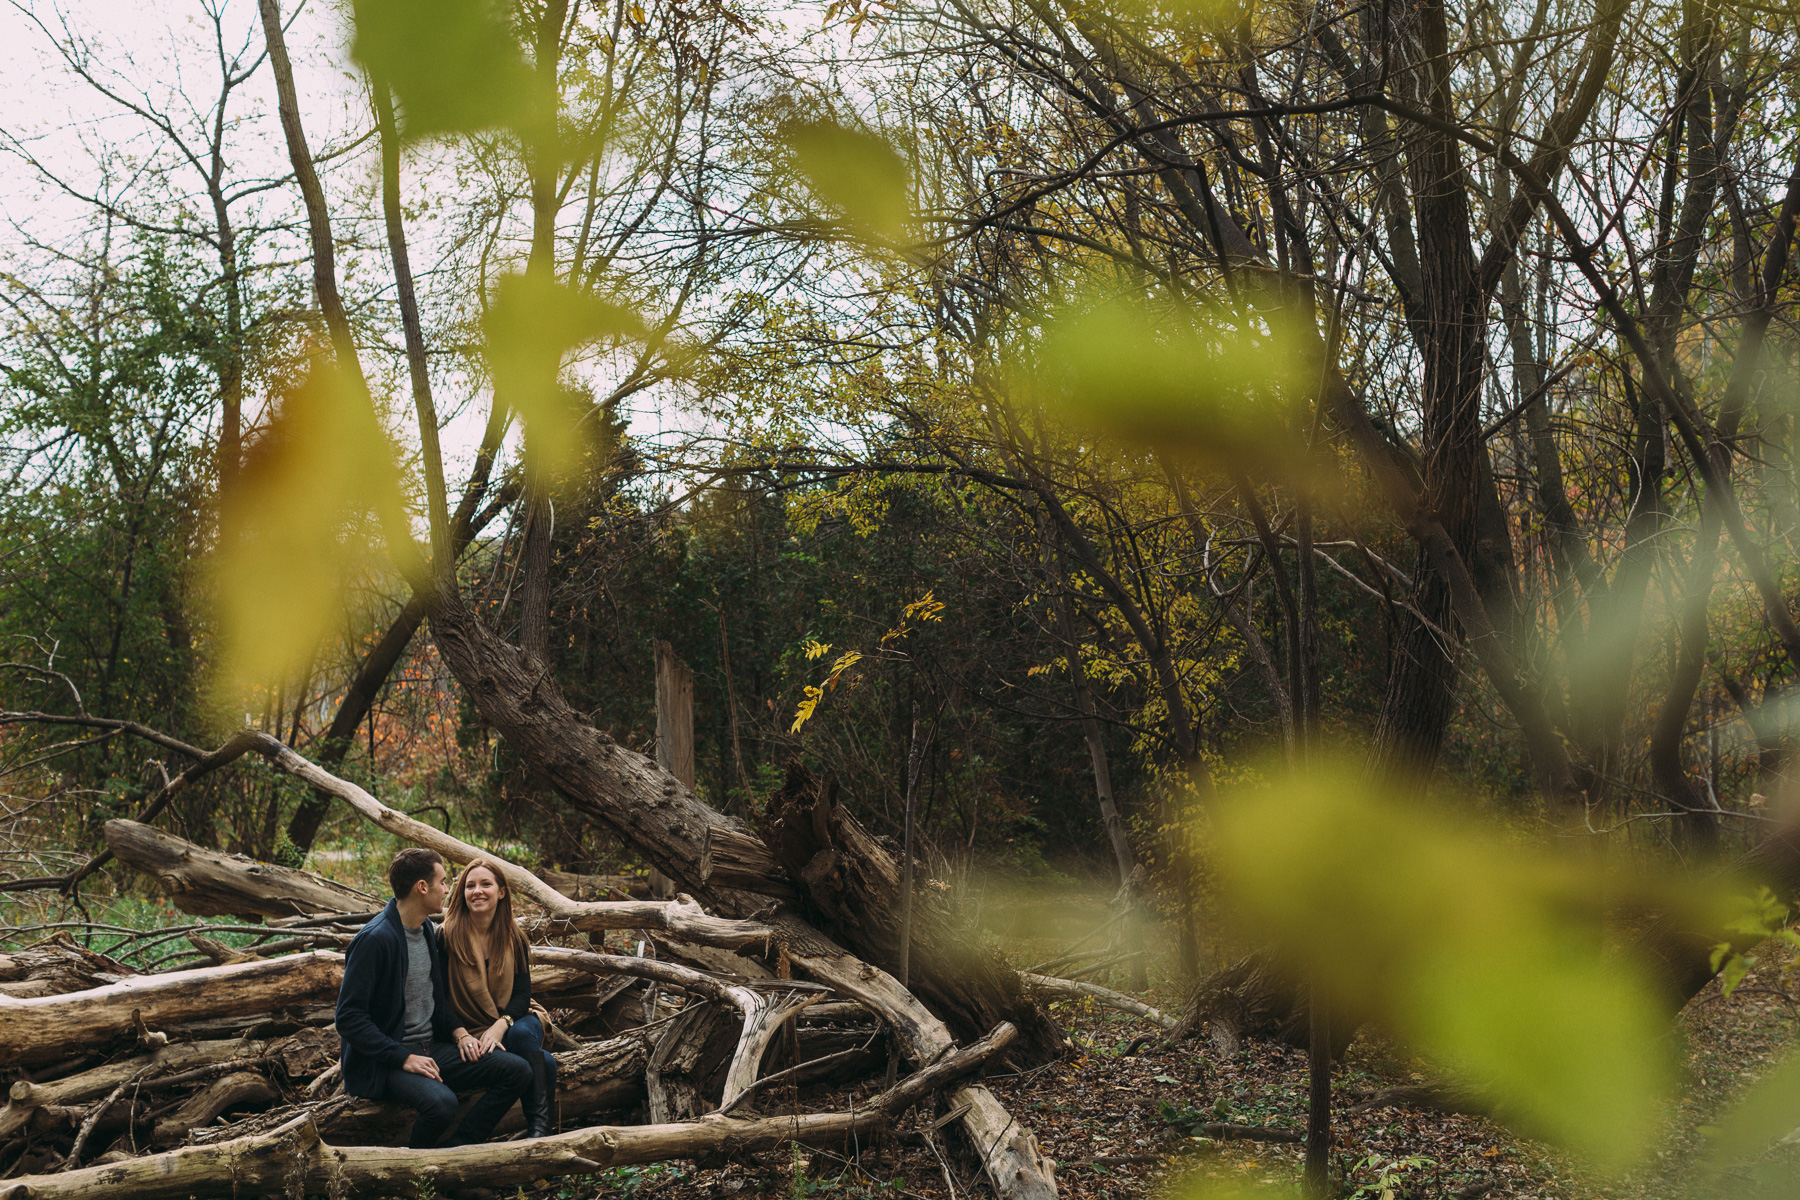 Evergreen-Brick-works-Toronto-engagement-photos-by-Sam-Wong-of_Artanis-Collective-Brooke-&-Adam_03.jpg